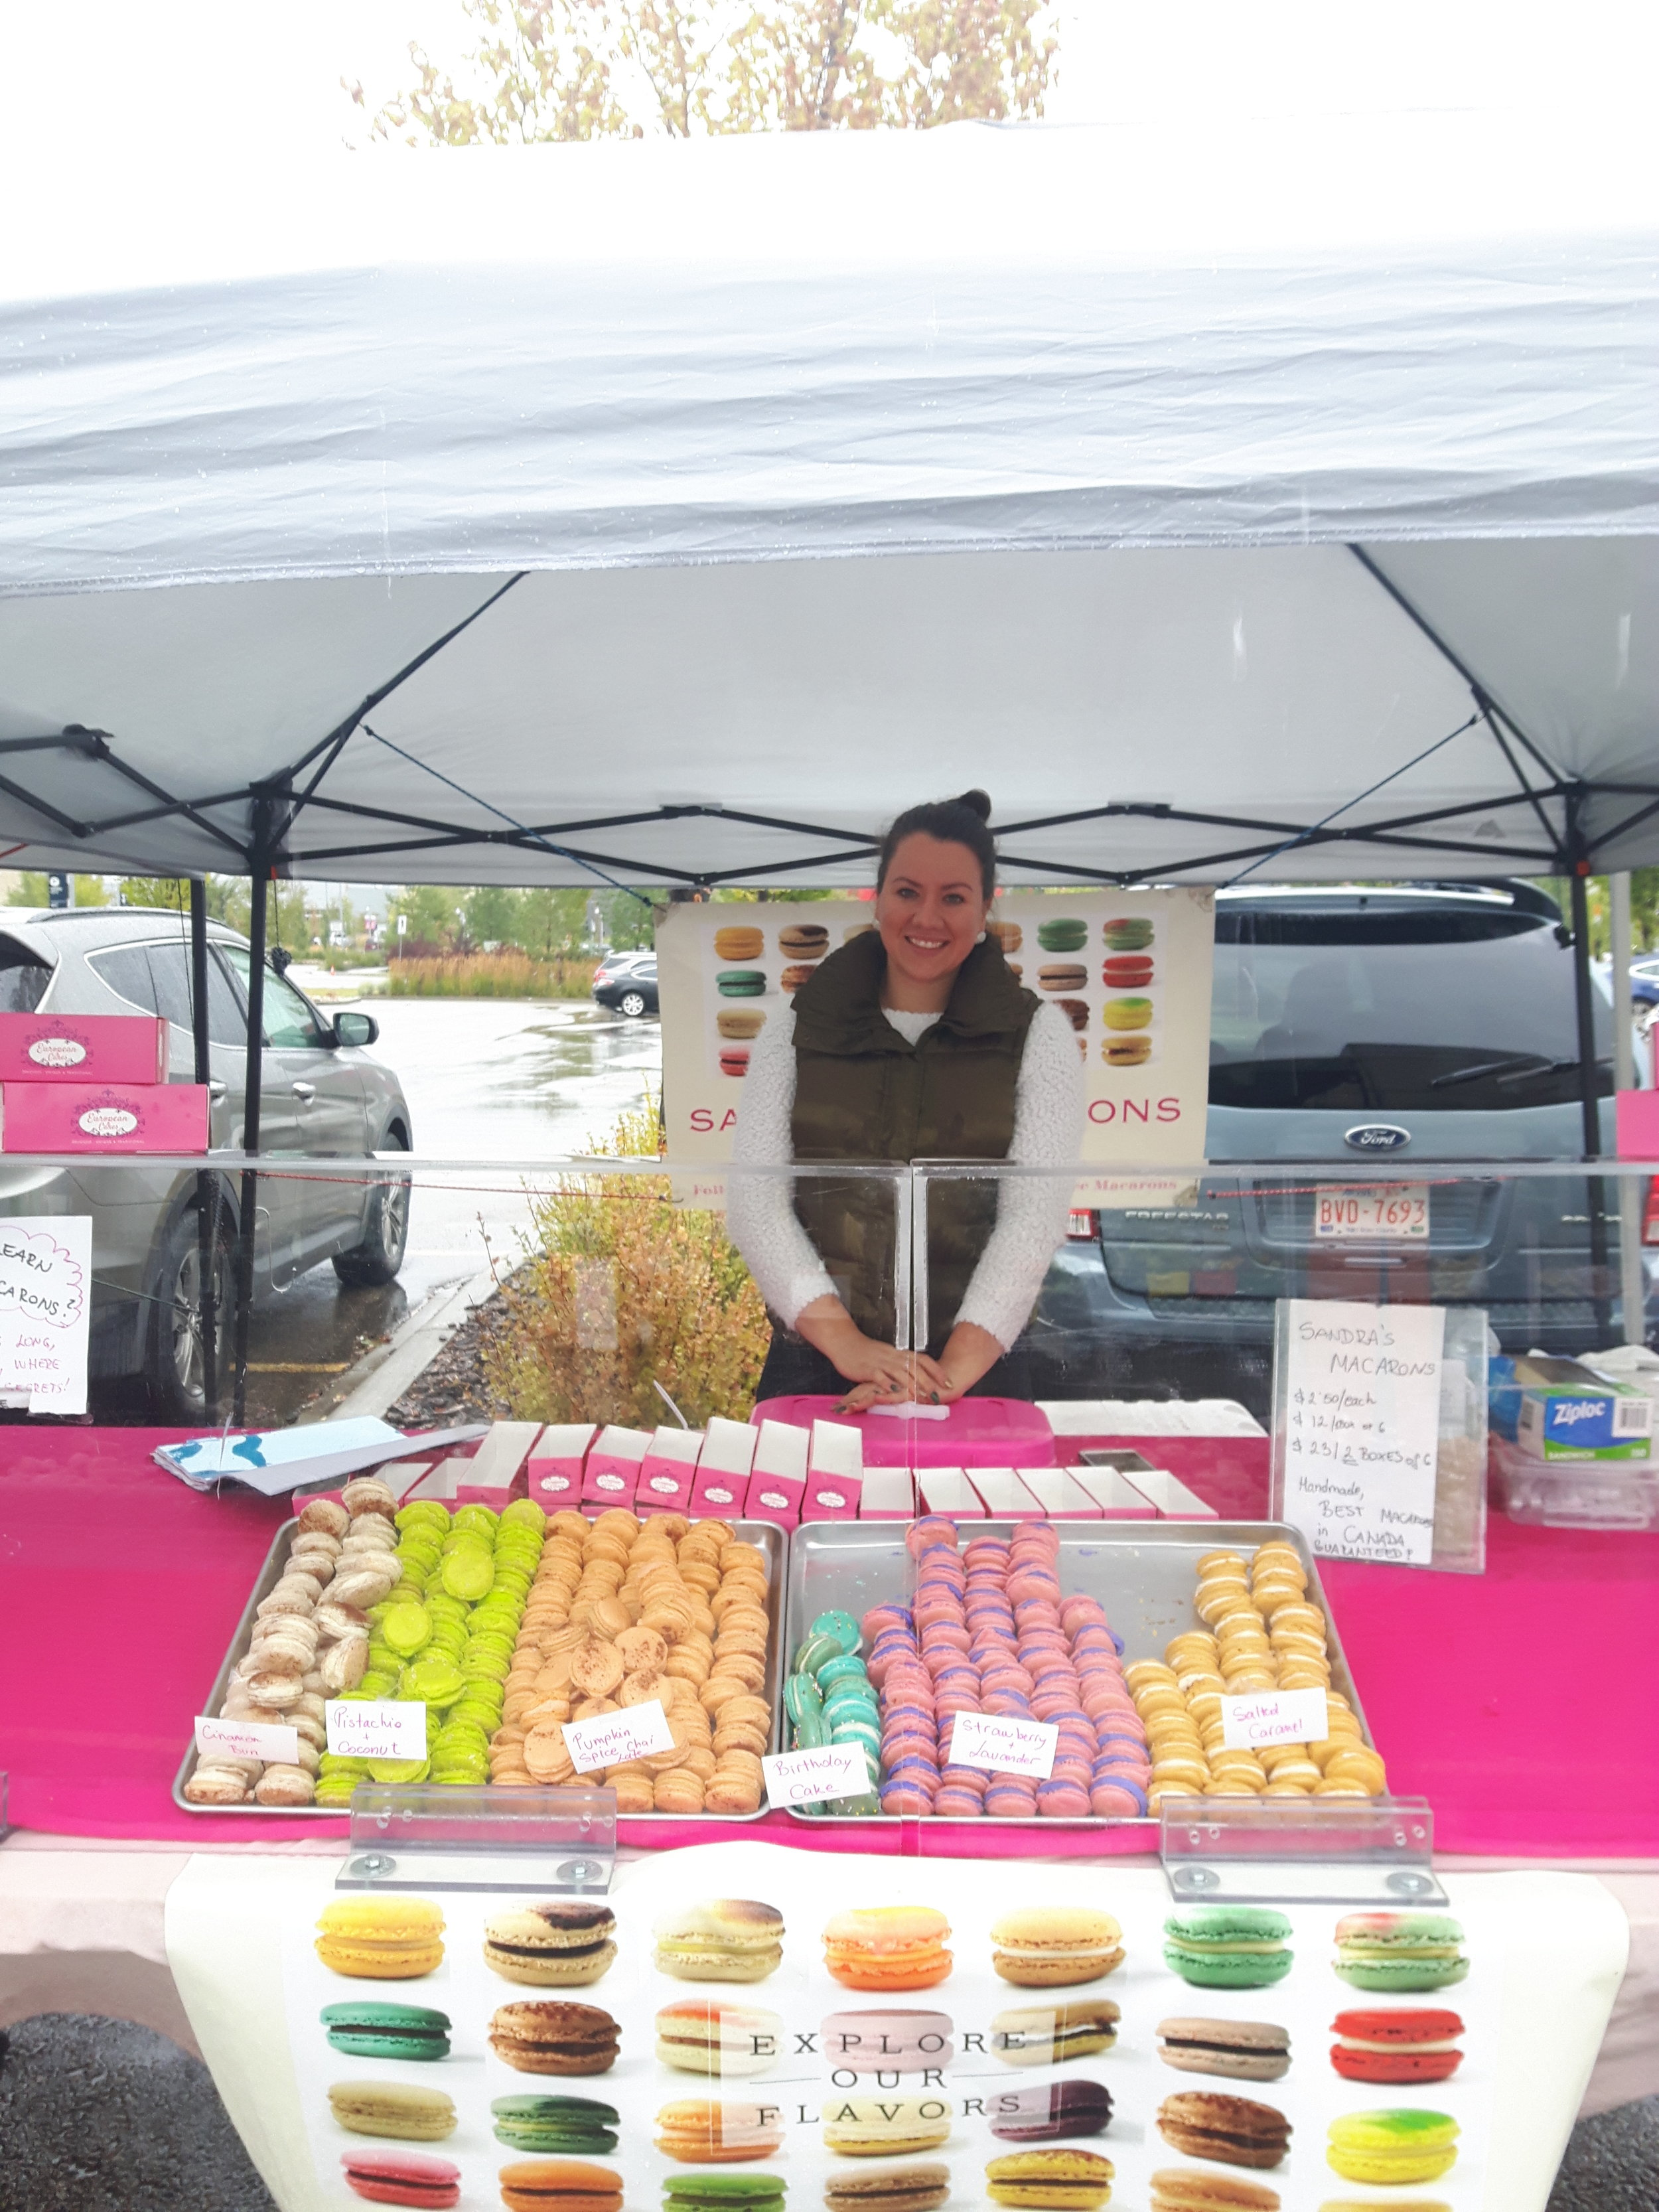 Sandra, from Sandra's Macarons braved the cold last market to bring us her cheerful and delicous macarons! She will be running macaron-making workshops in the future; let her know if you are interested!